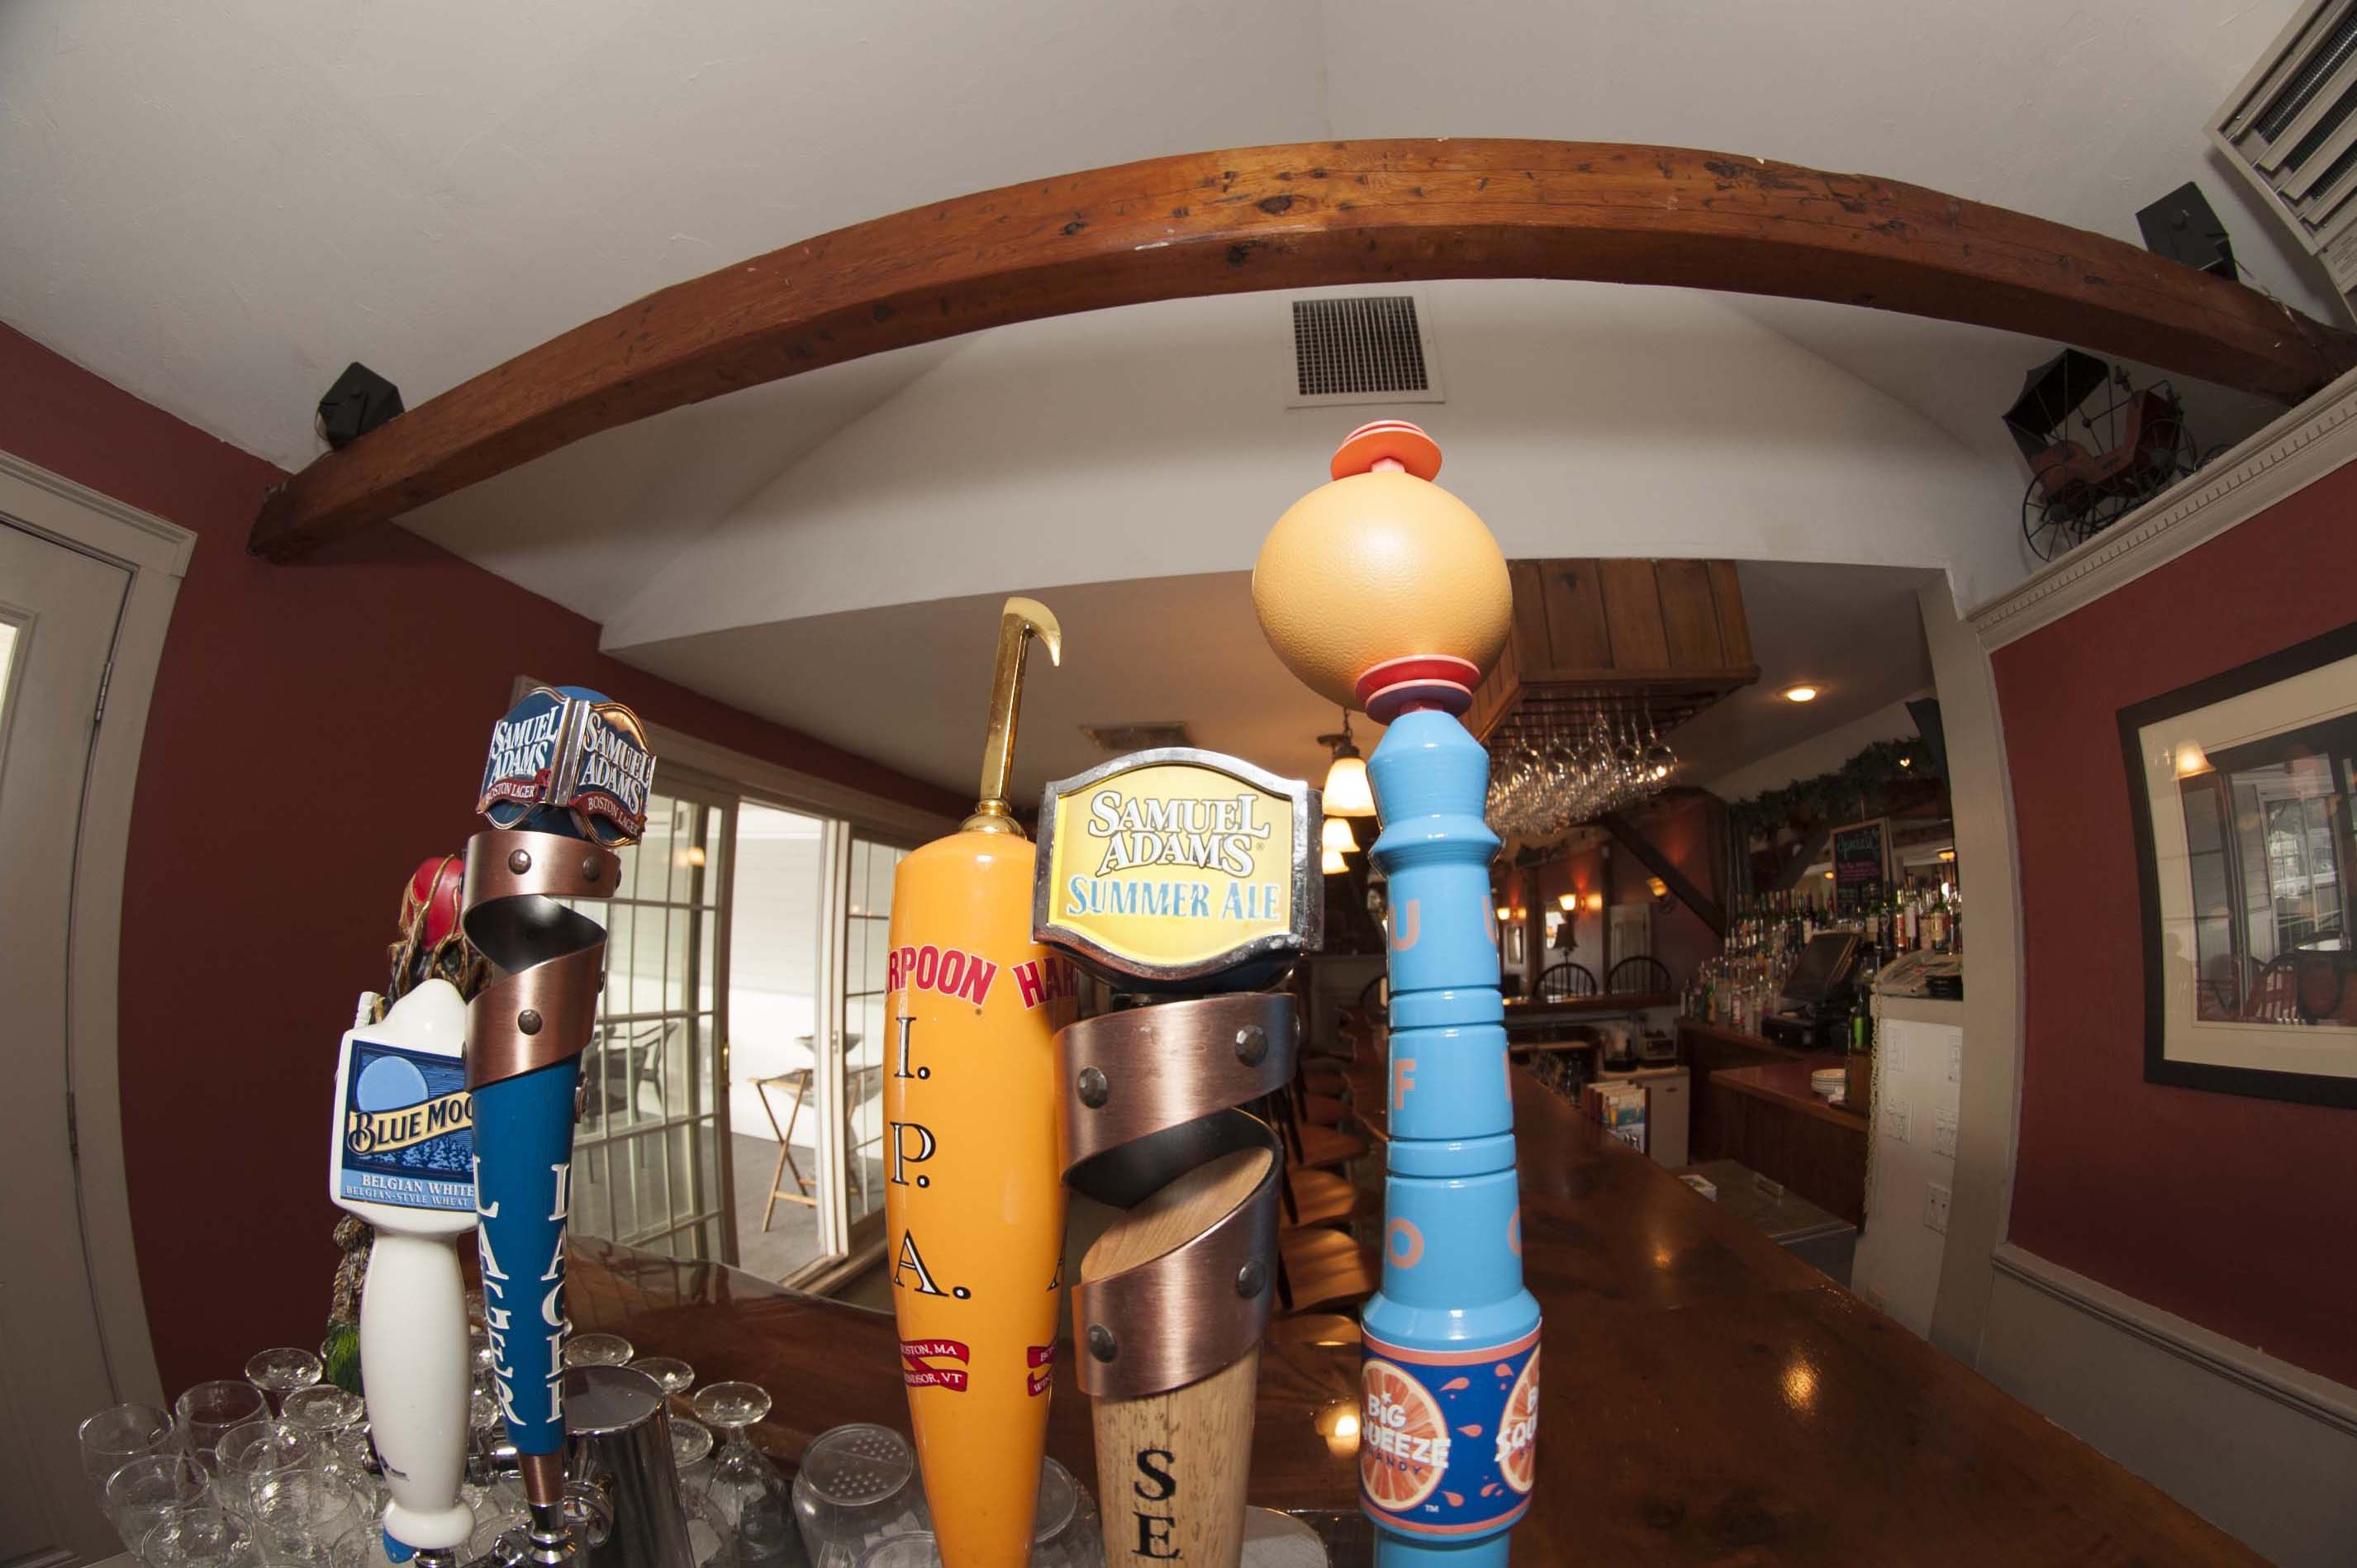 Wooden bar with 5 mulit-colored beer taps overlooking an empty room